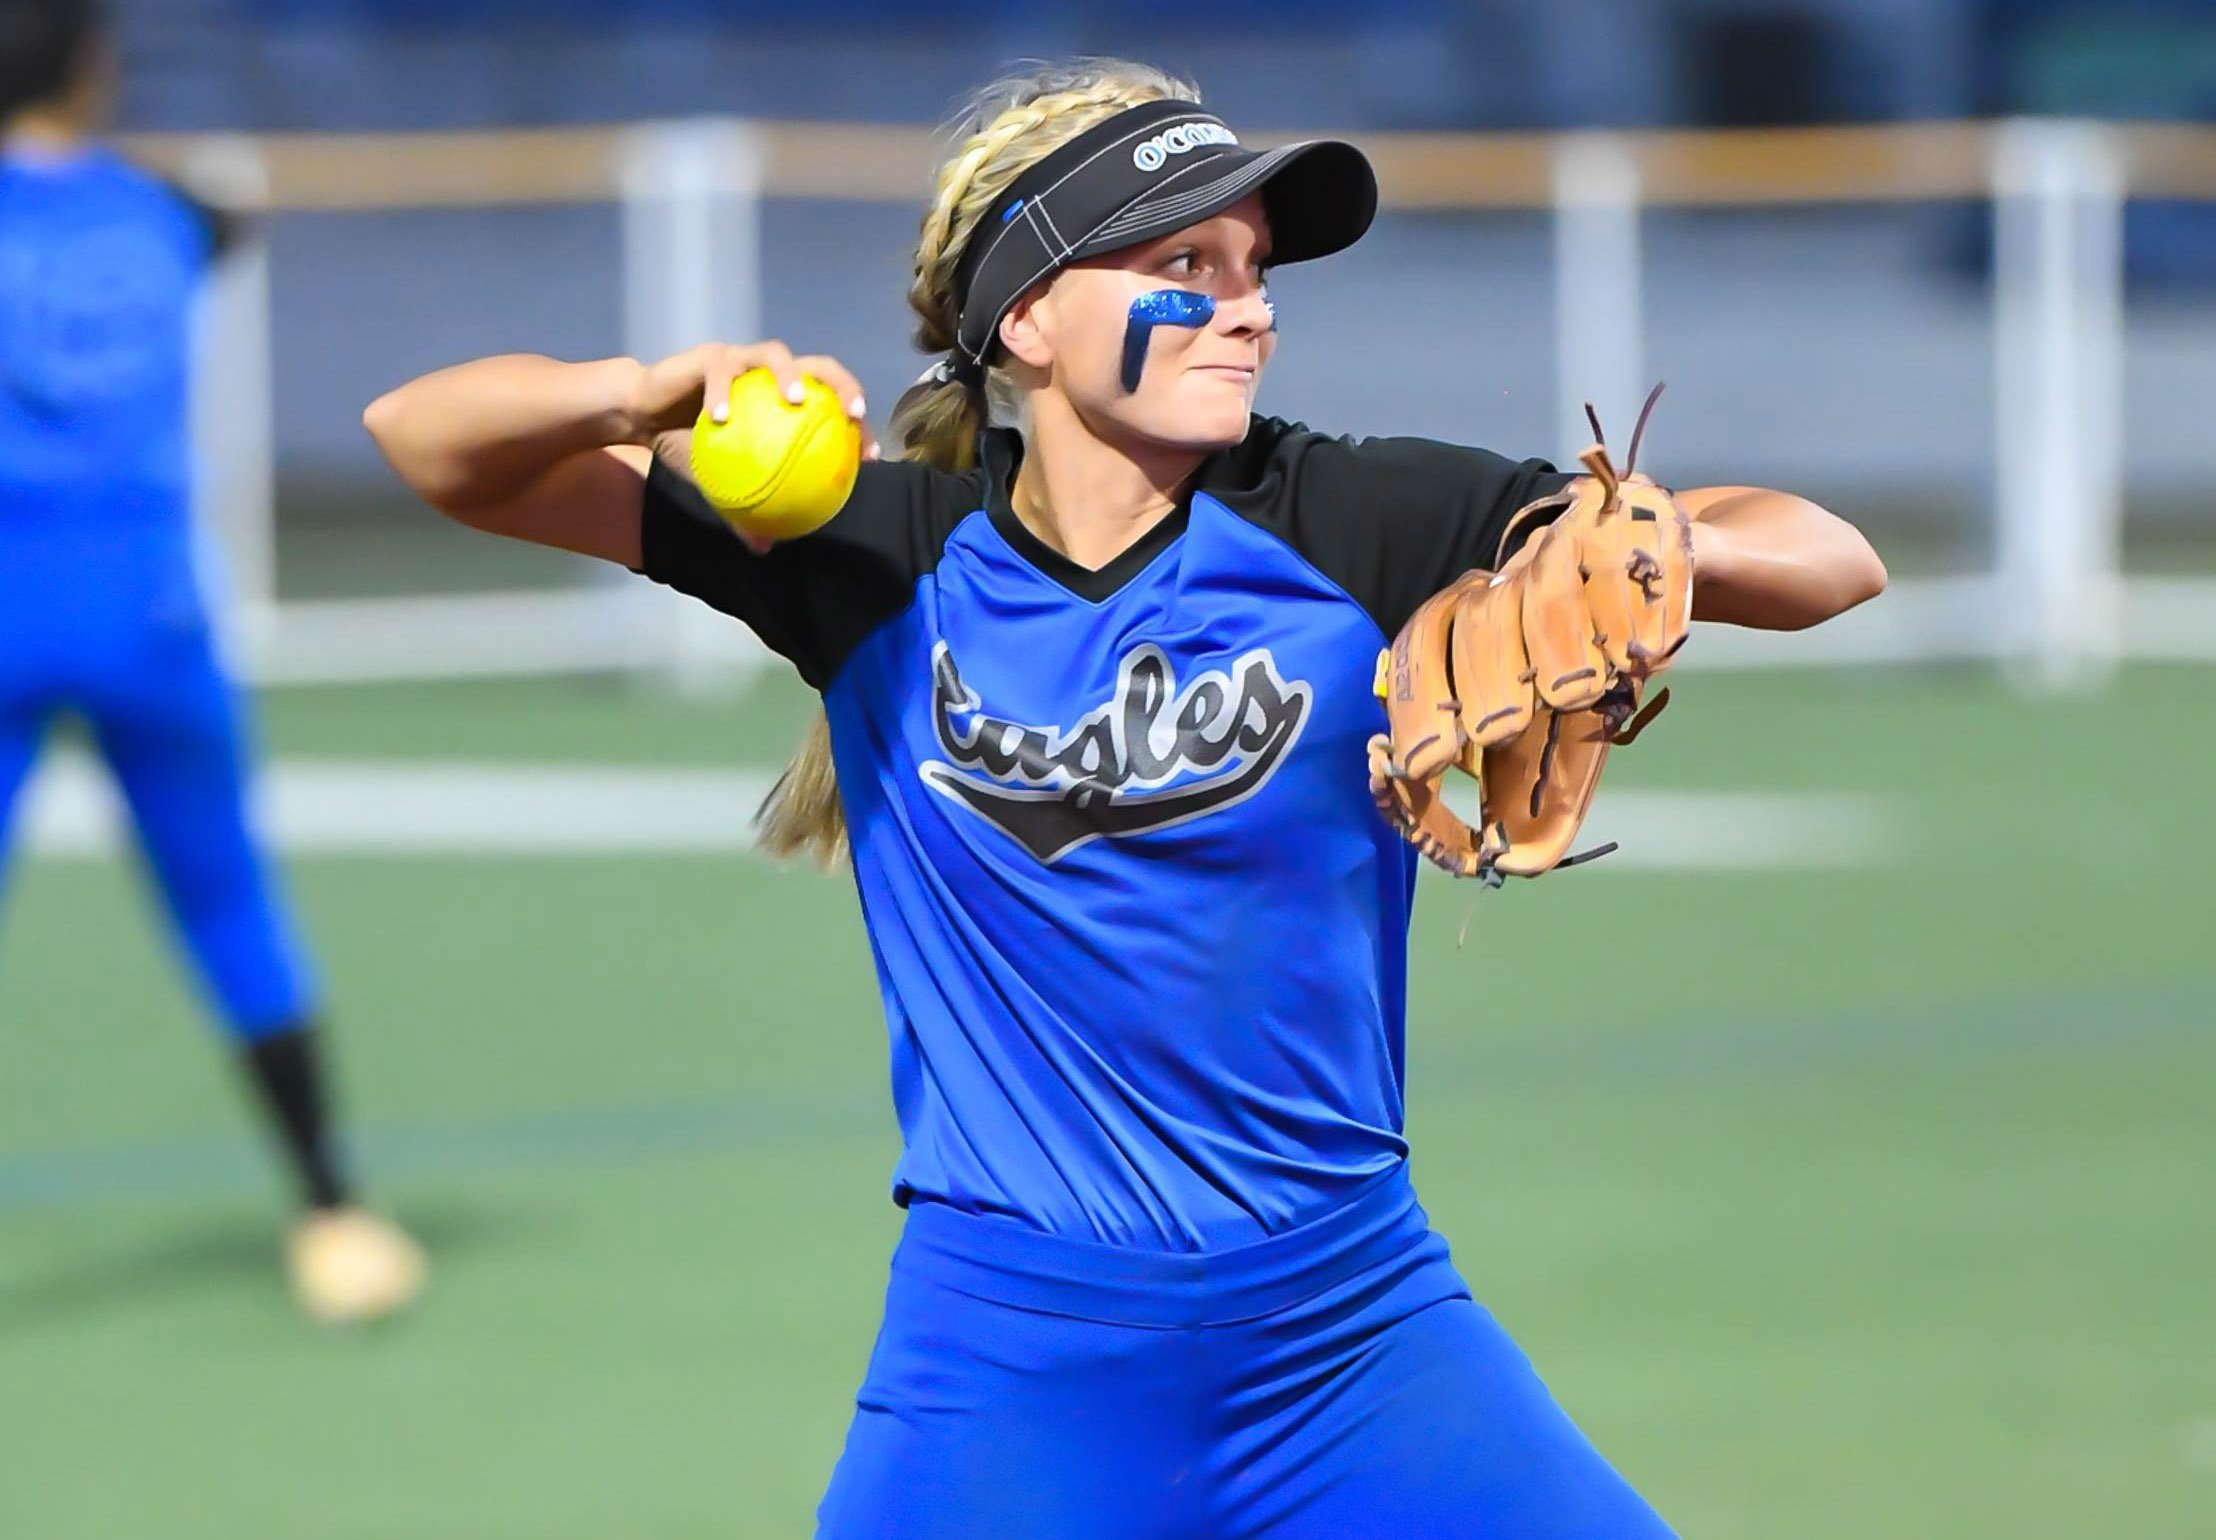 Softball standout Rylee Holtorf of O'Connor was our choice for the top female athlete in the state of Arizona.